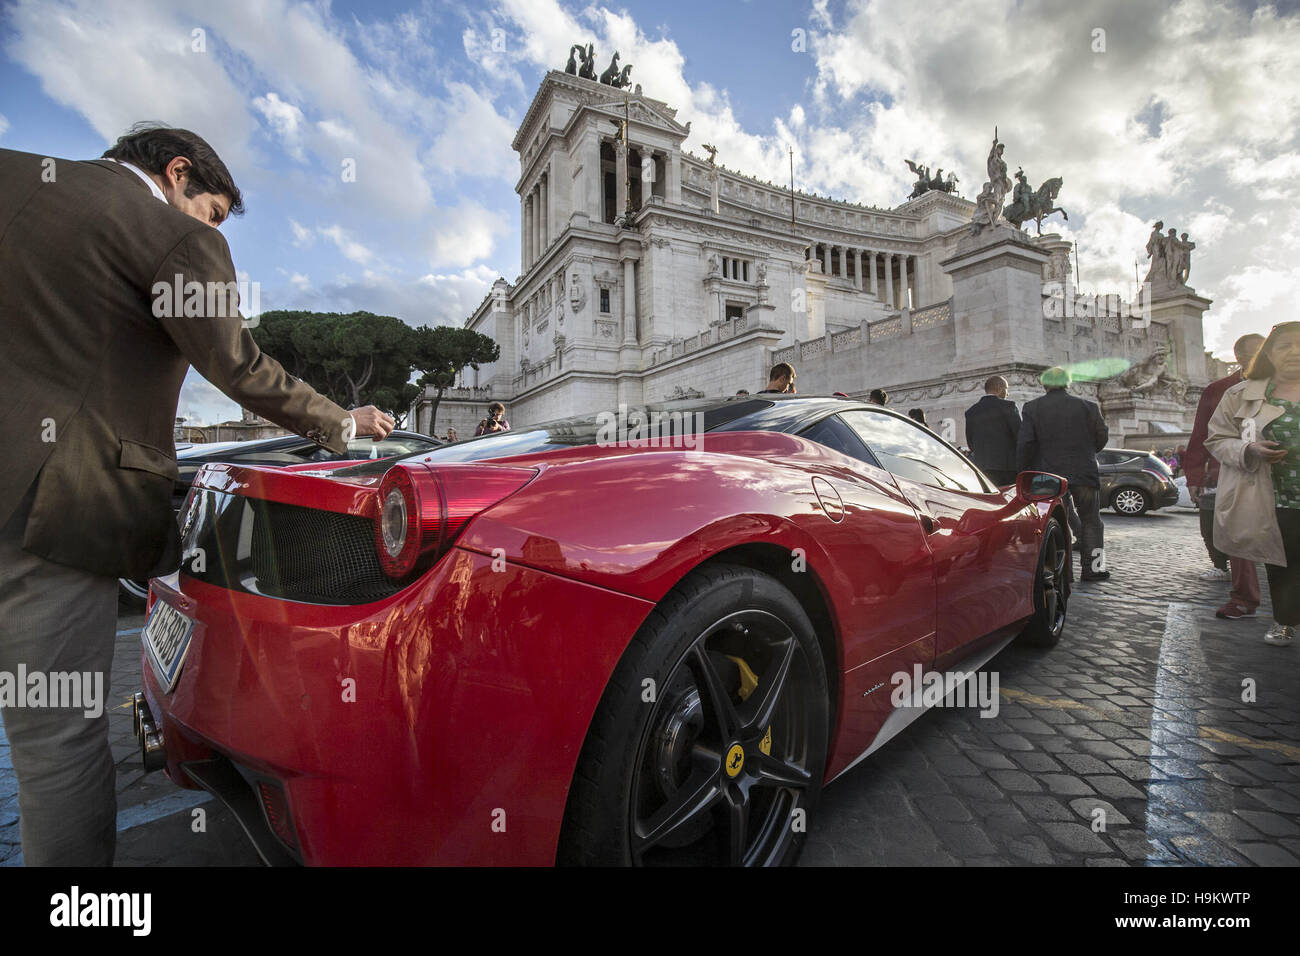 The Ferrari Store Reopening On Via Tomacelli In Rome Italy